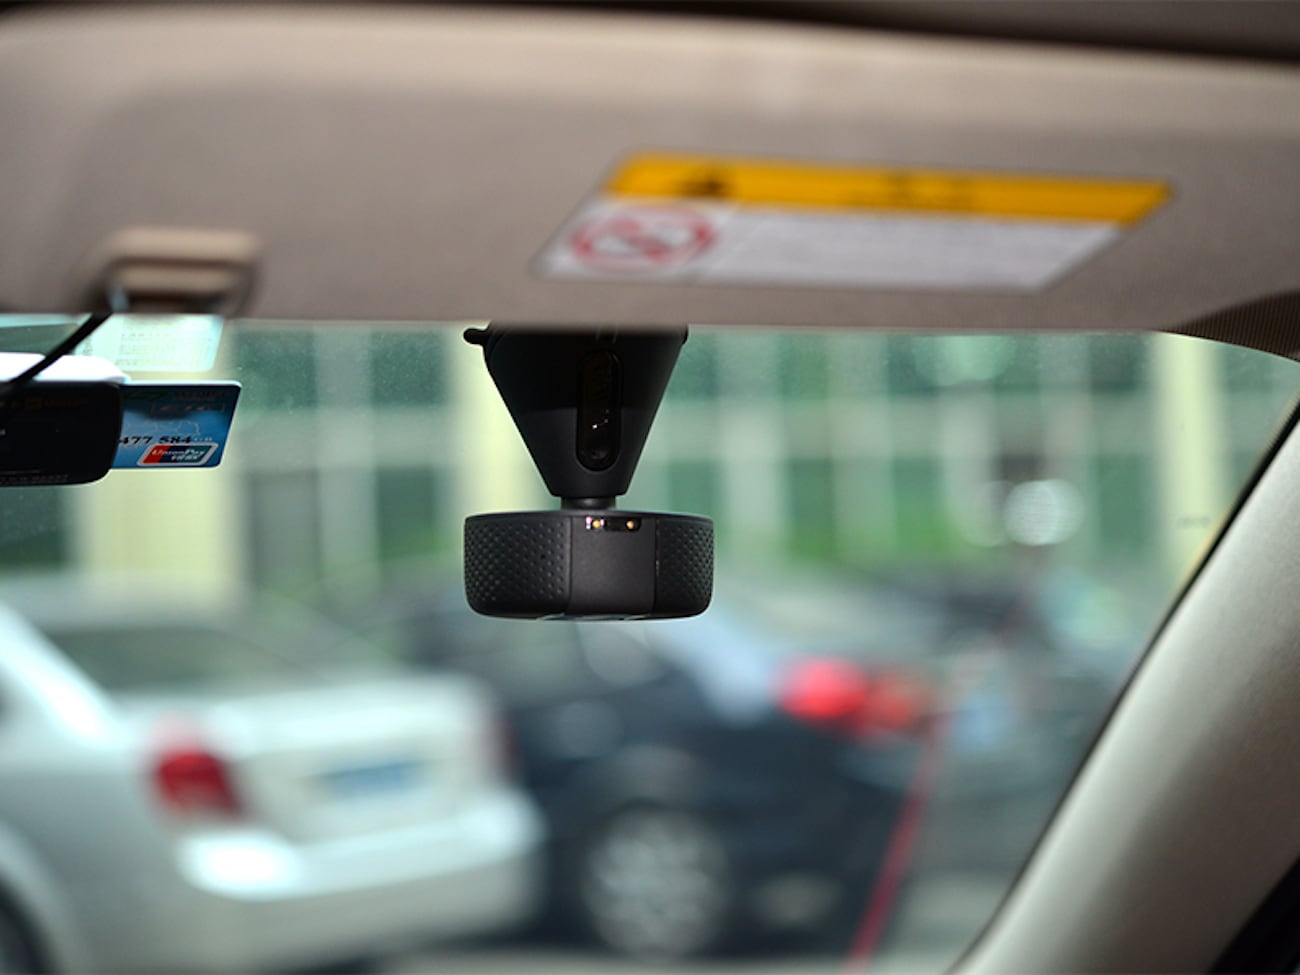 VAVA Smart Dash Cam